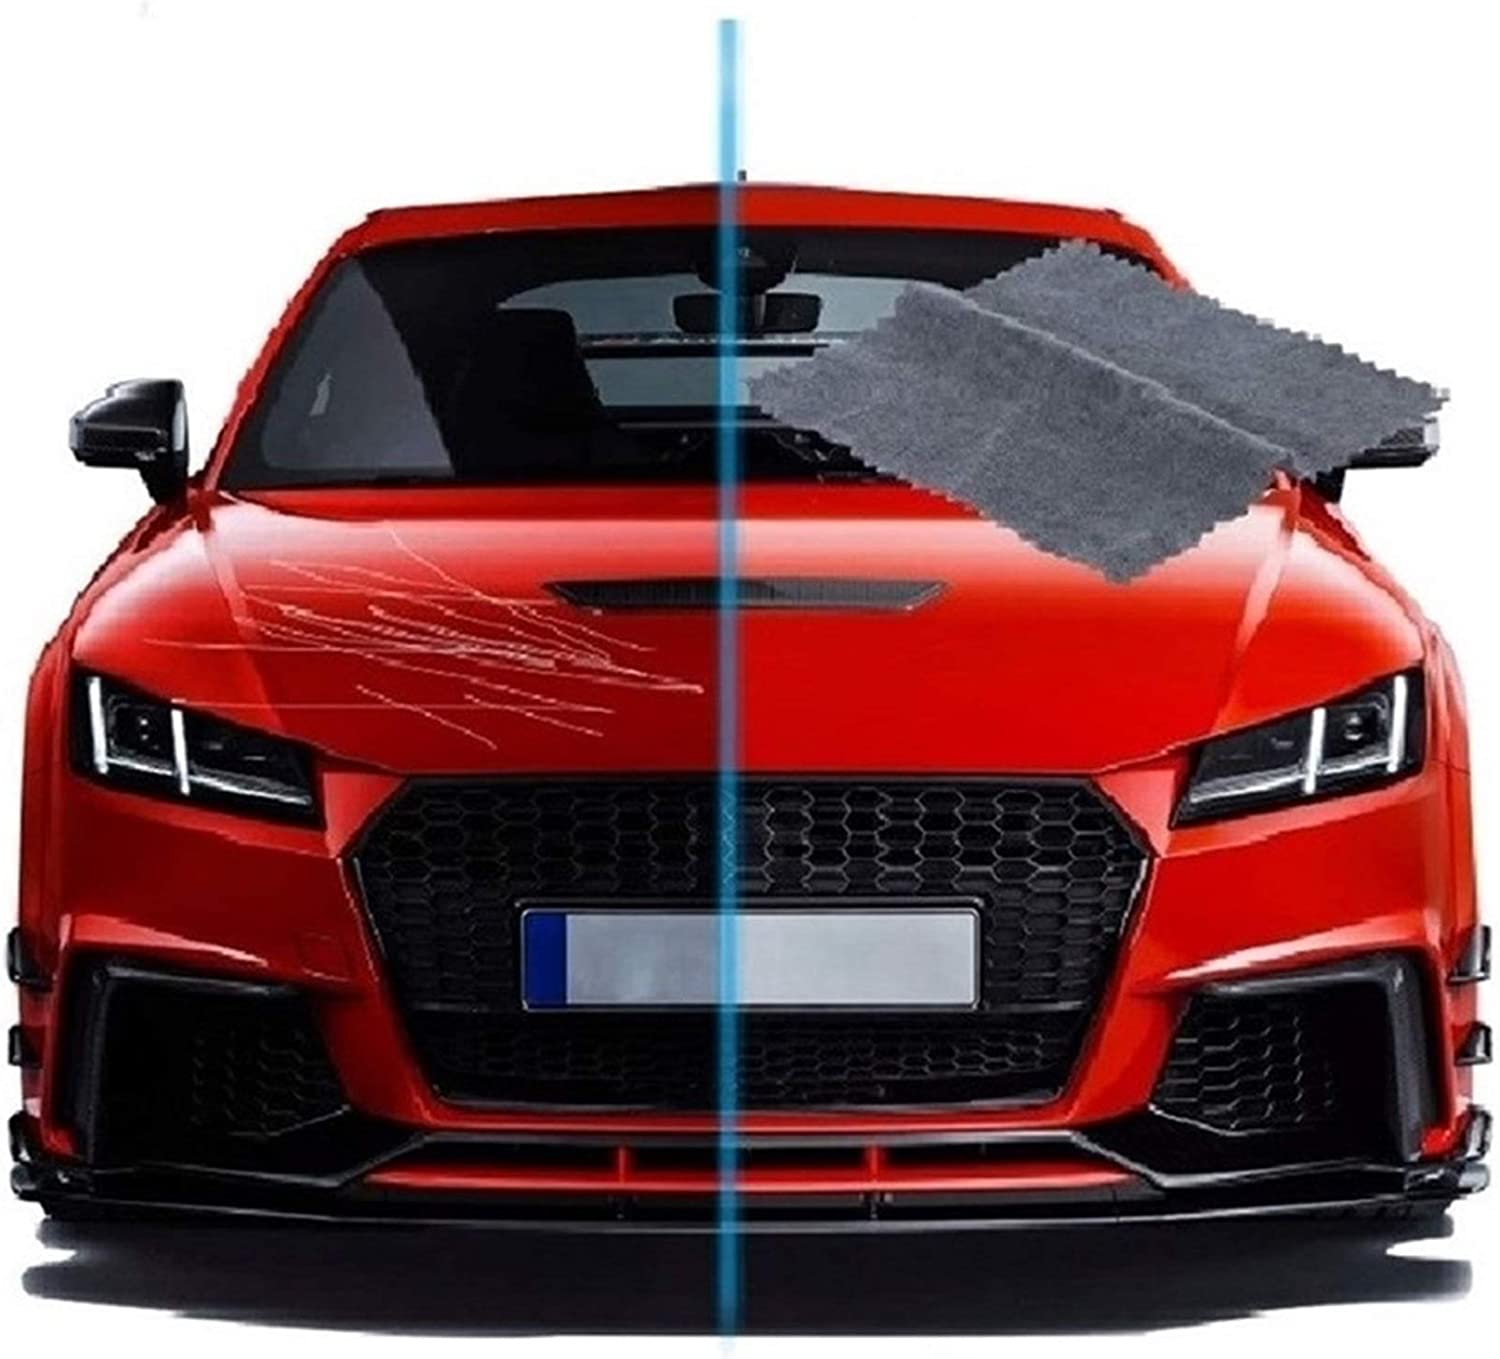 Nanomagic Cloth For Car Paint Scratch Repair,Easy to repair small and medium scratched car paint water spots on Surface,2pcs Nano Magic Cloth-Multi-Purpose Car Scratch Removal Cloth